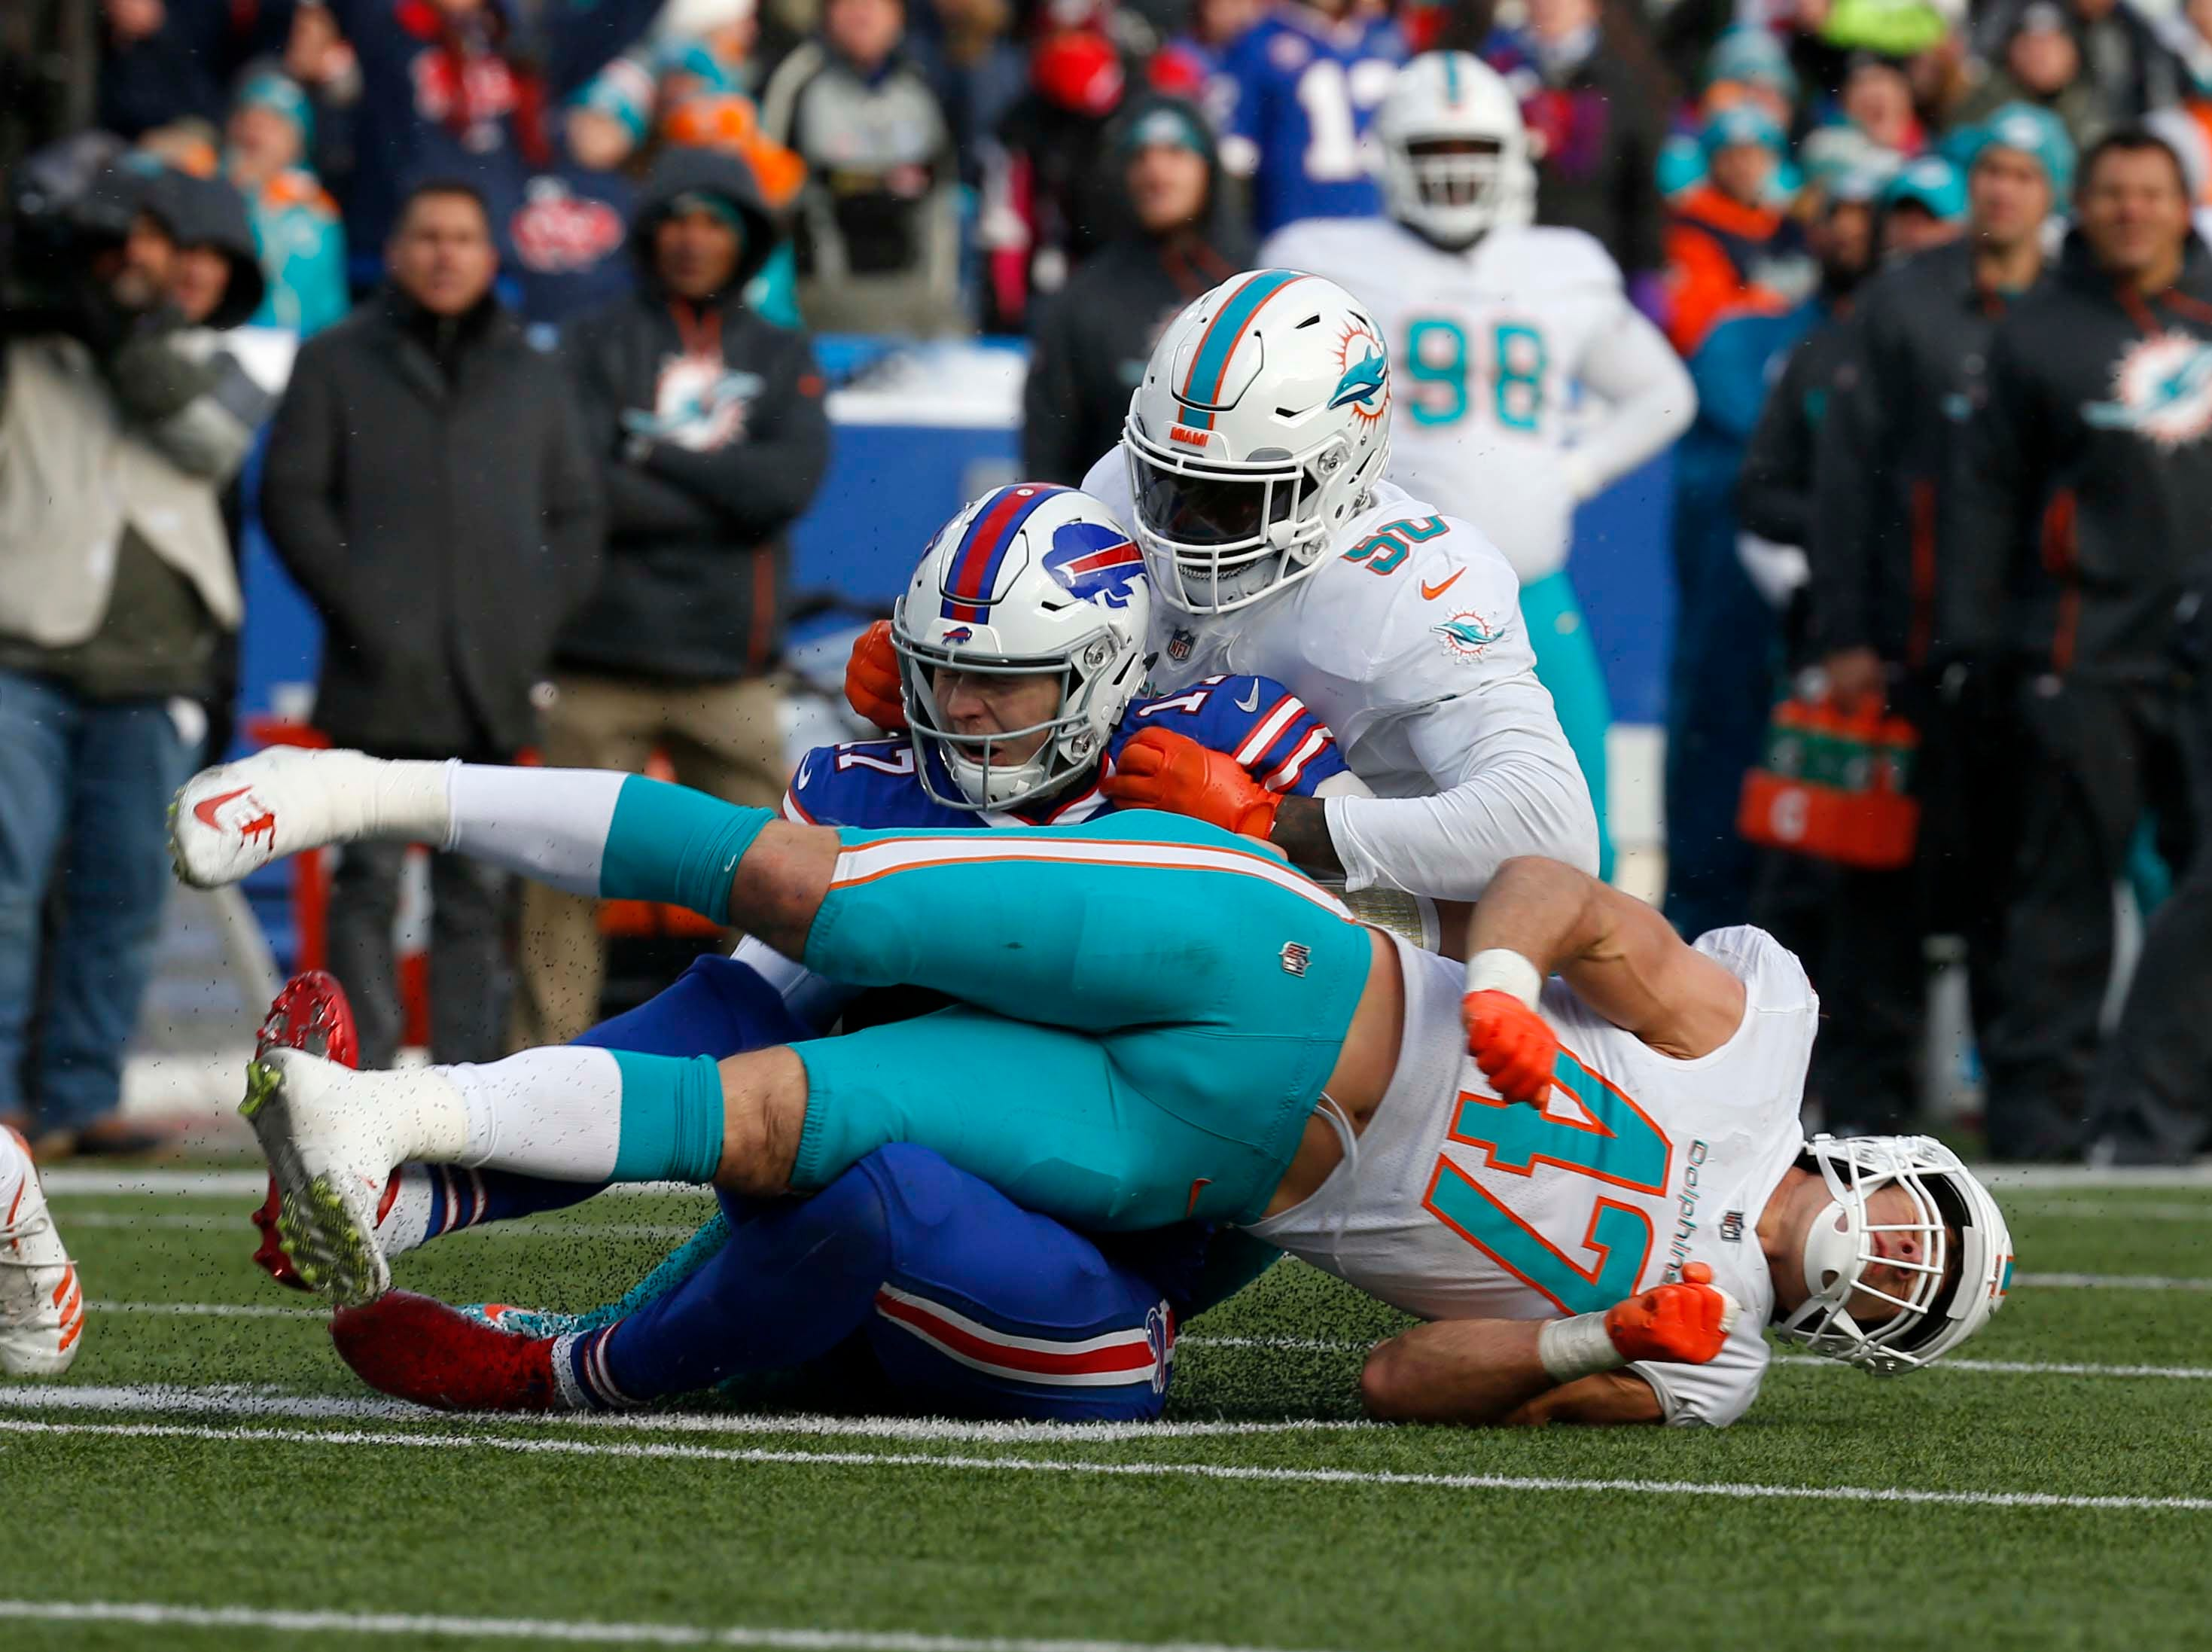 Dec 30, 2018; Orchard Park, NY, USA; Miami Dolphins defensive end Andre Branch (50) tries to tackle Buffalo Bills quarterback Josh Allen (17) as he runs the ball and slides while taking a late hit from Miami Dolphins outside linebacker Kiko Alonso (47) during the second half at New Era Field. Mandatory Credit: Timothy T. Ludwig-USA TODAY Sports